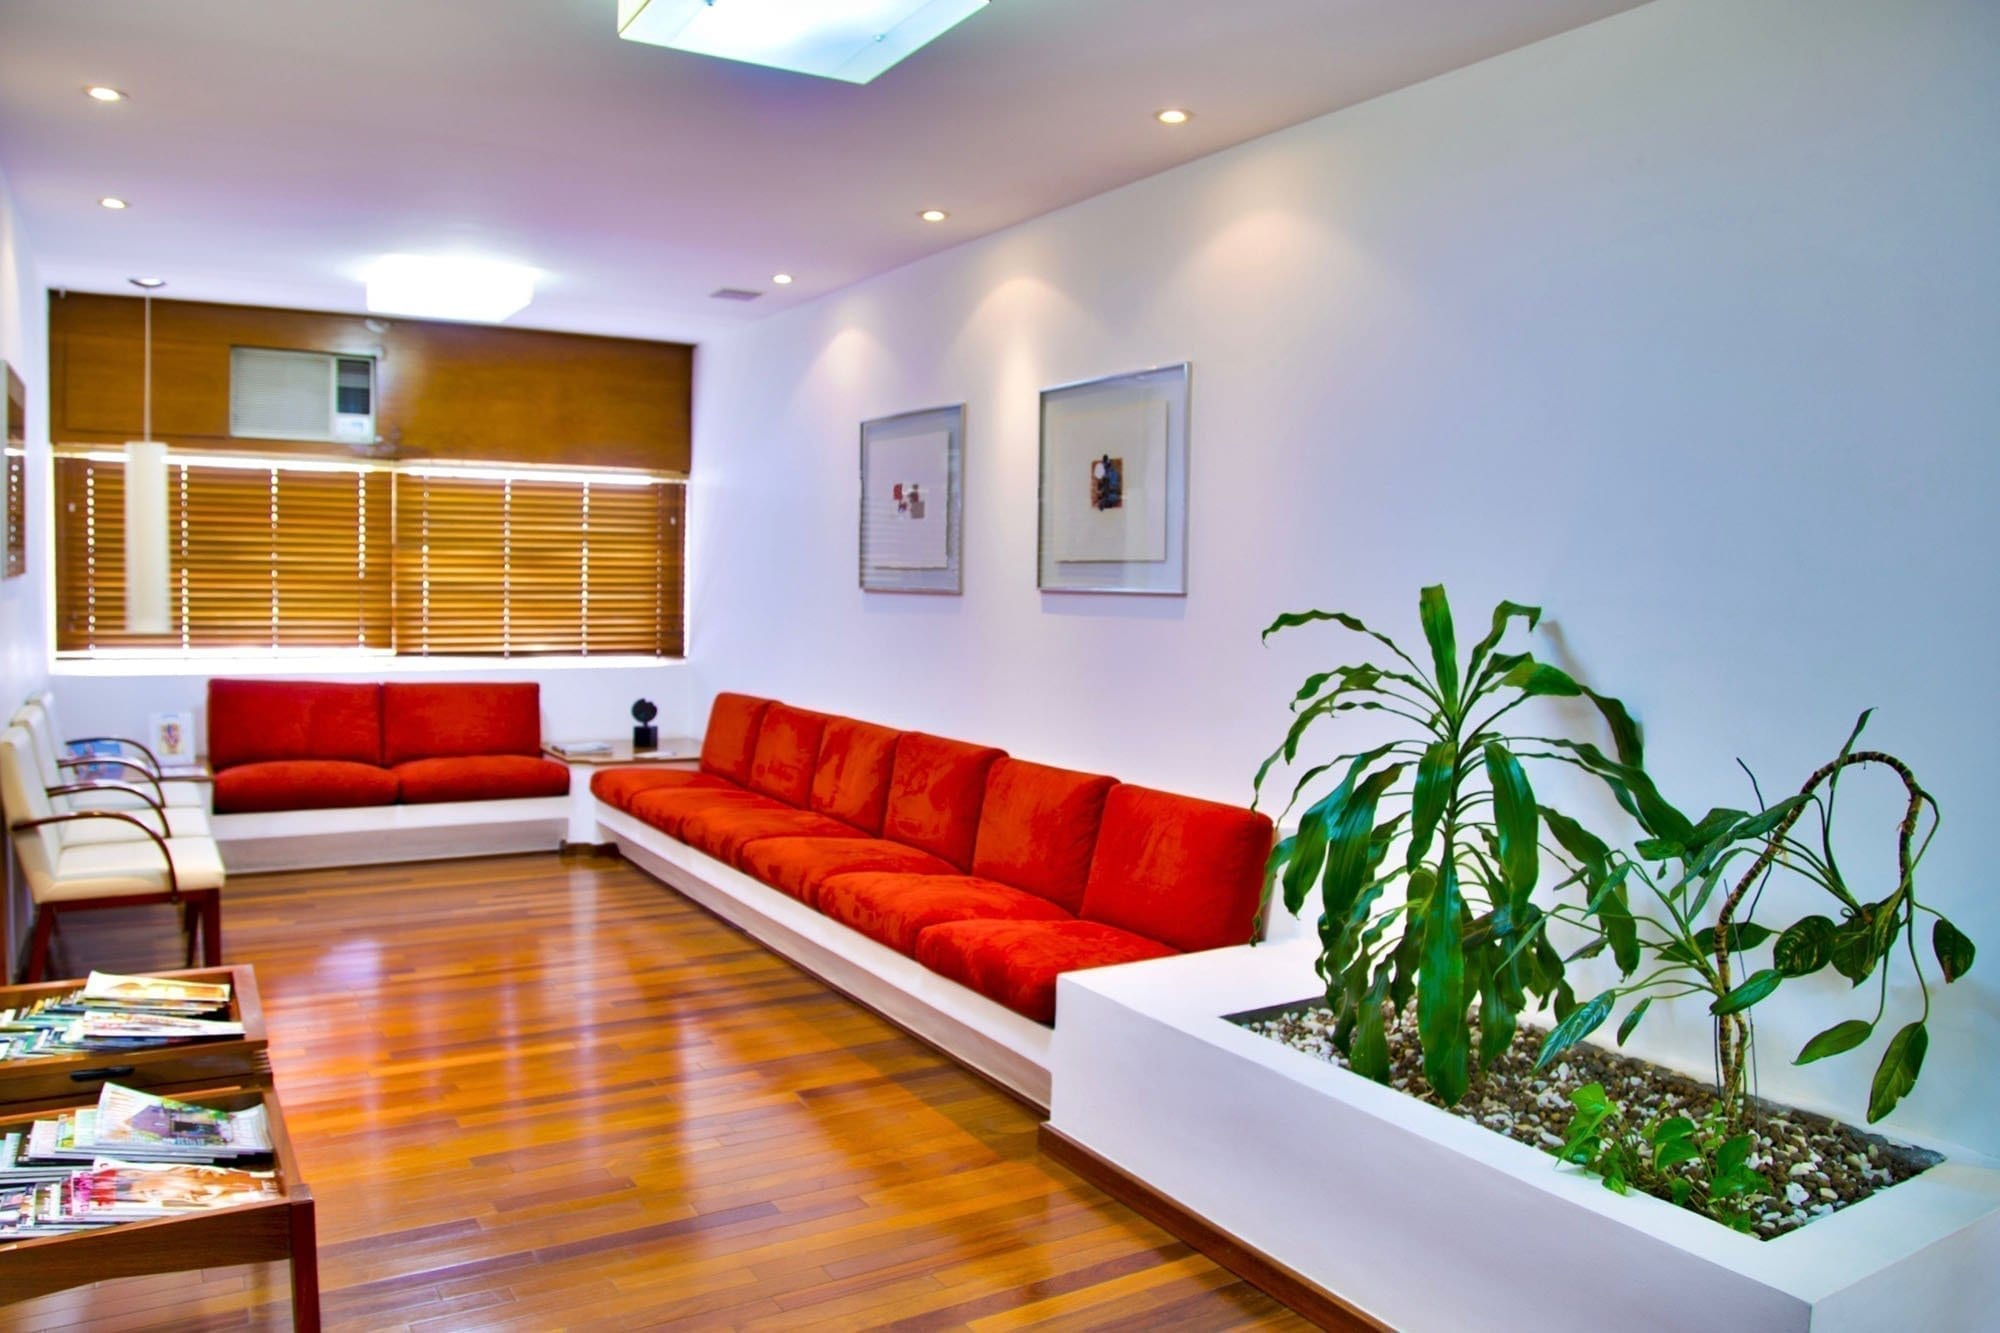 Commercial painting - office waiting room